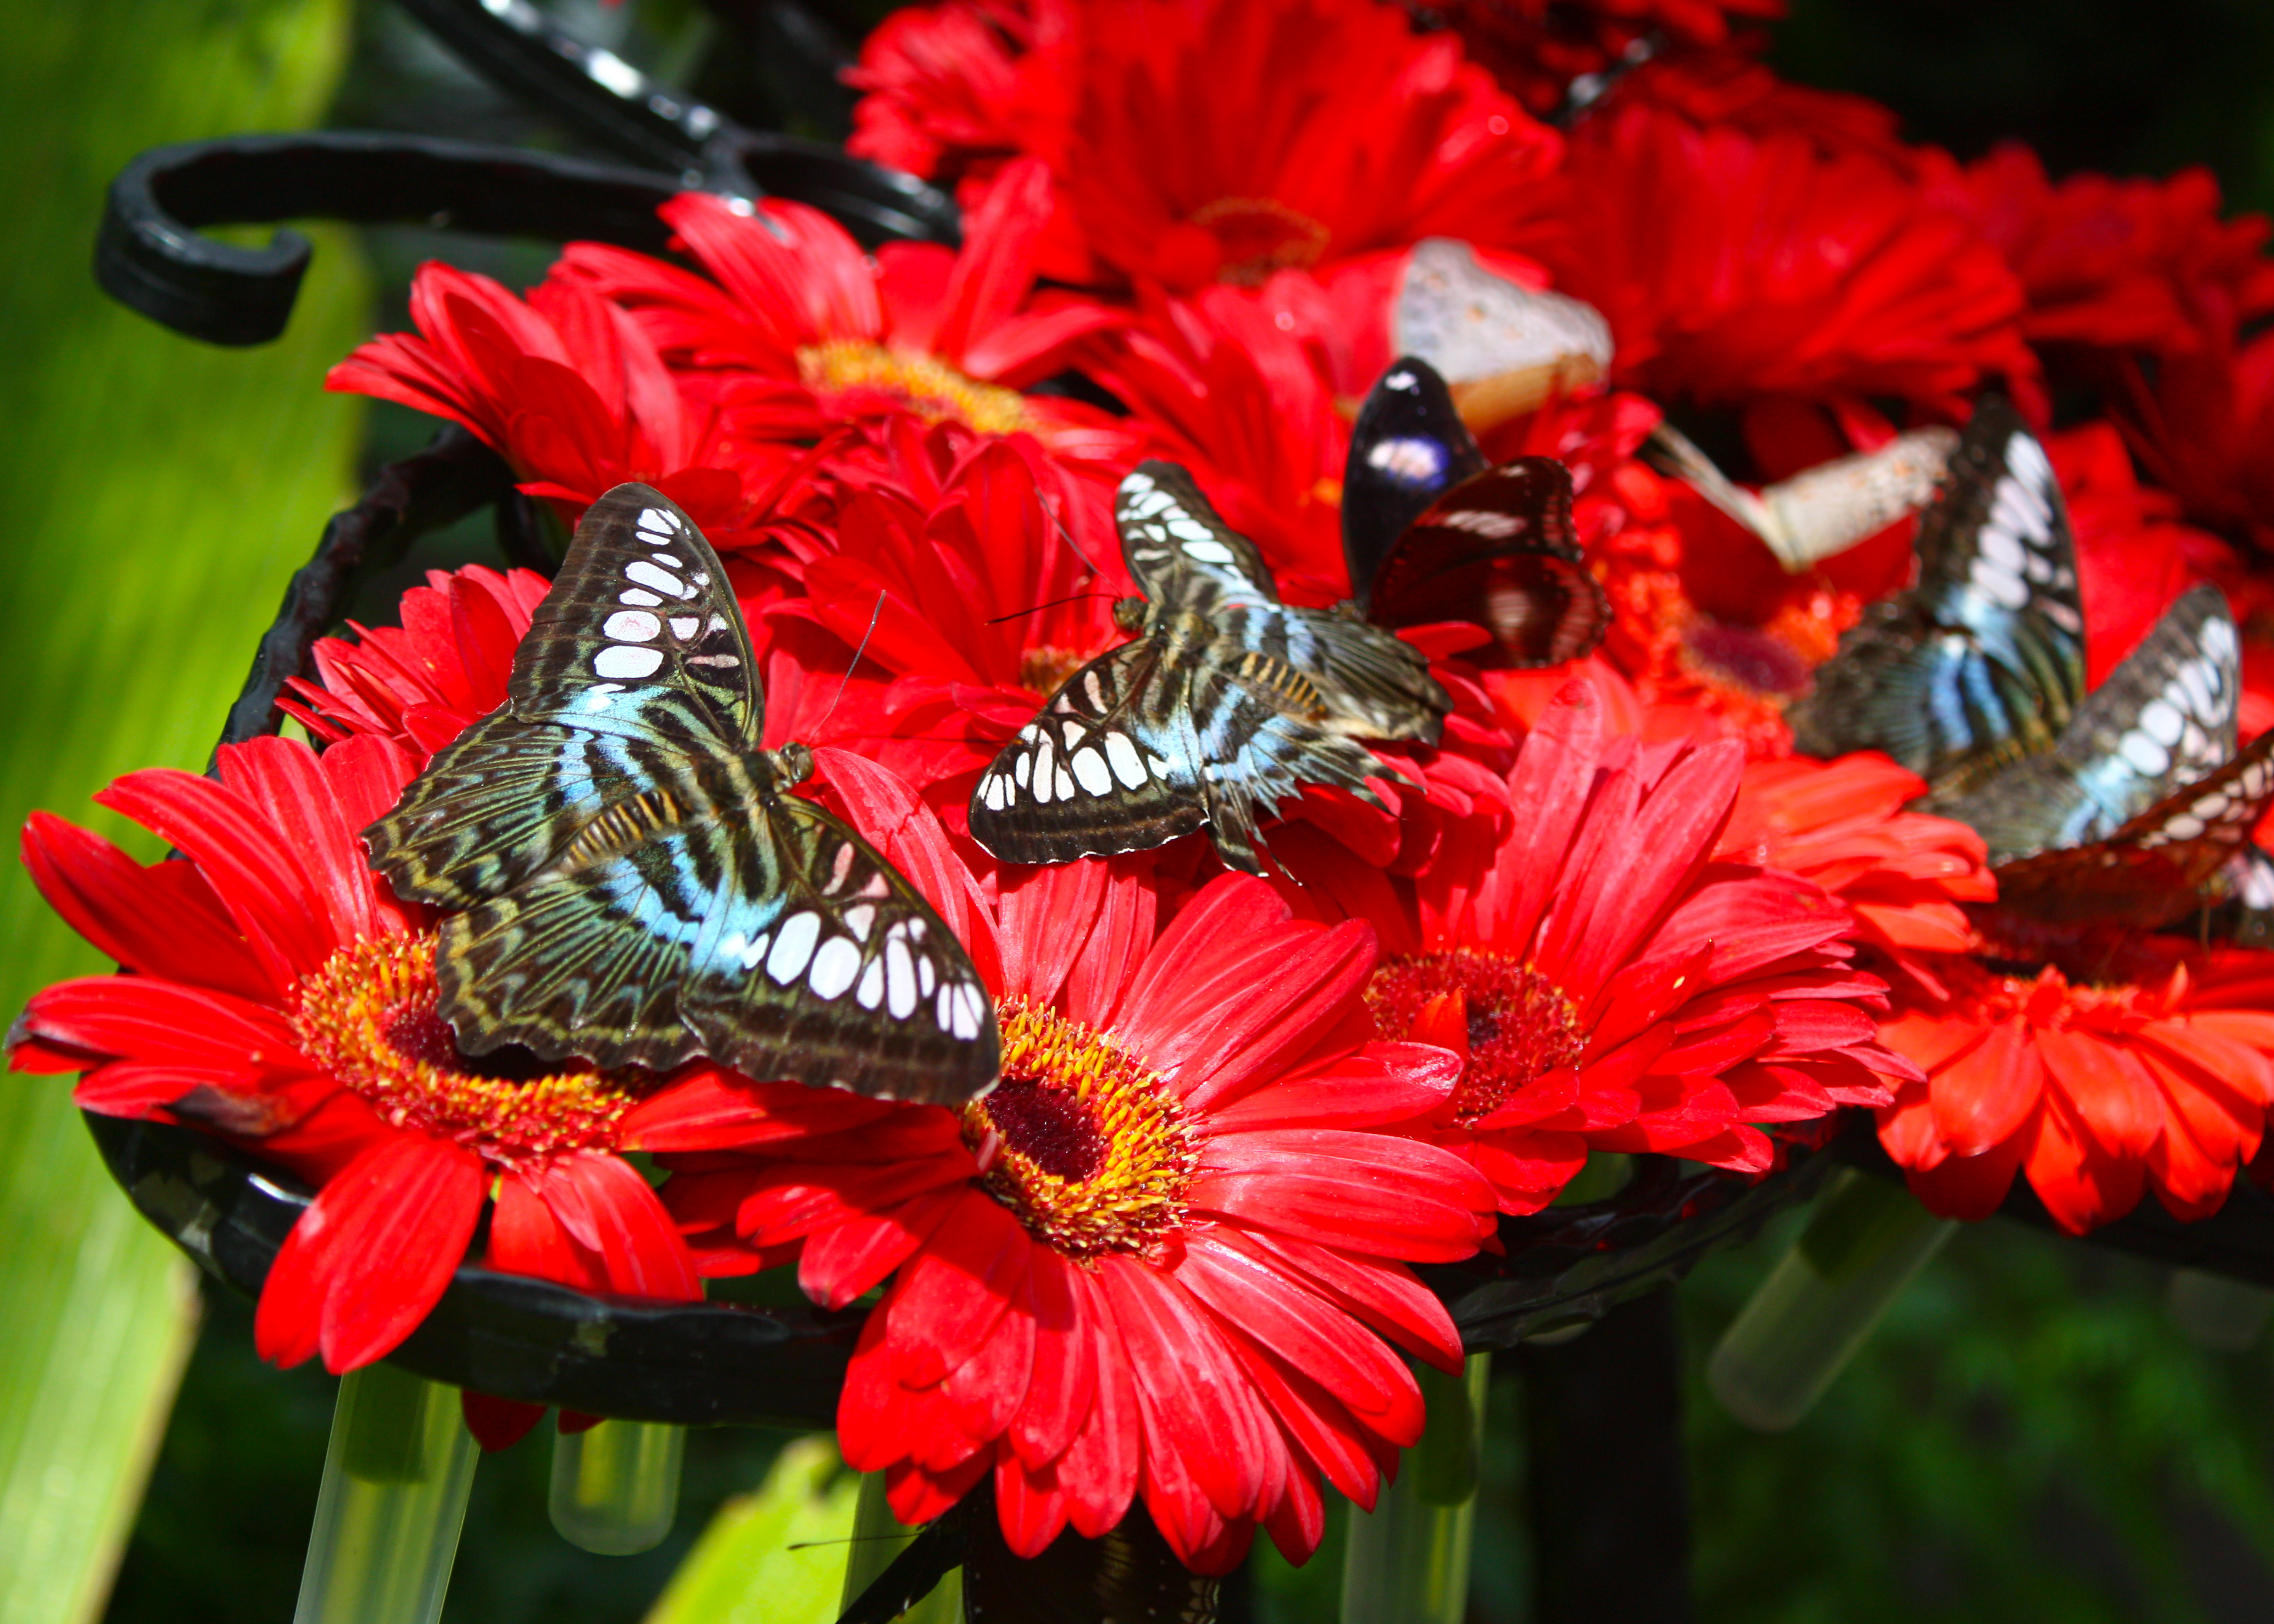 File Butterfly Garden At Changi Airport Singapore 3366809228 Jpg Wikimedia Commons